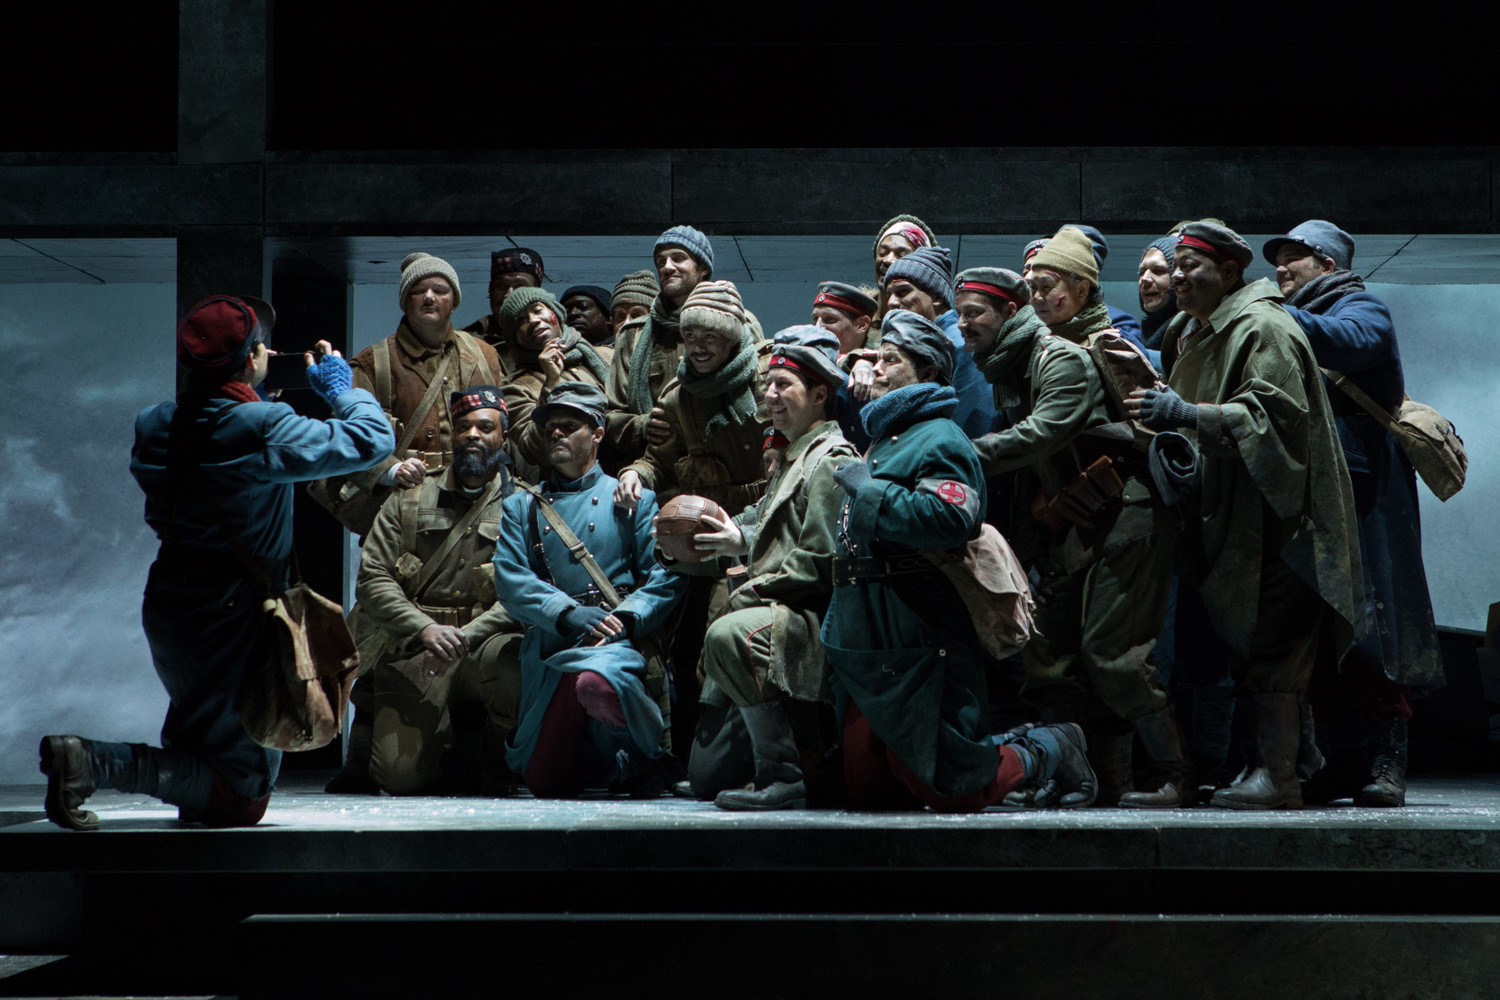 BWW Review: Washington National Opera's SILENT NIGHT is a Timely Tribute to Veterans